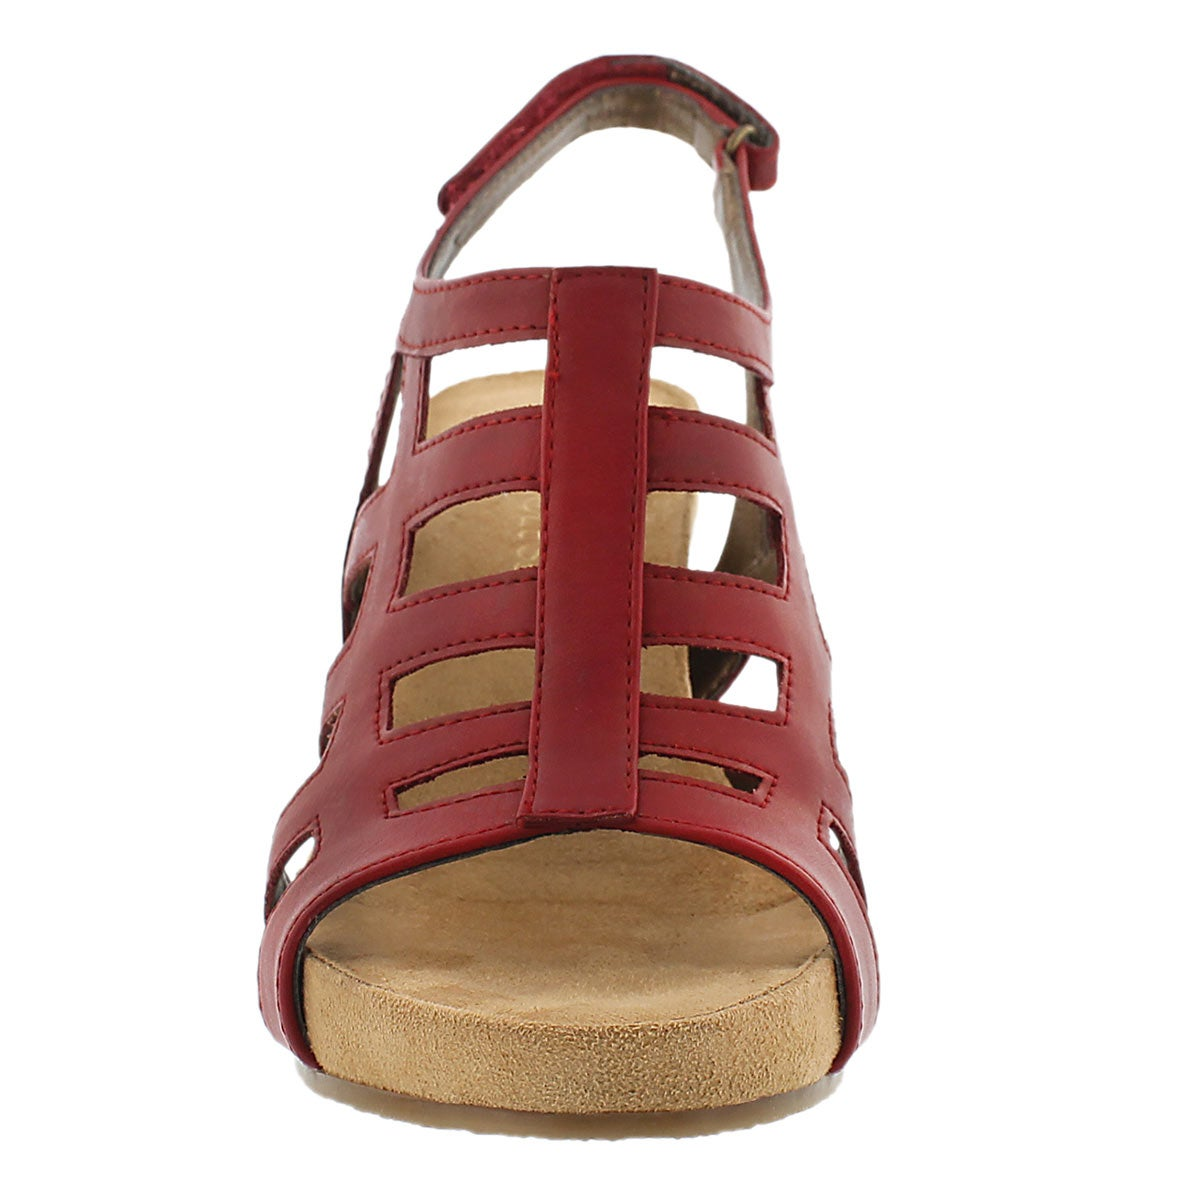 Lds Mint Plush red wedge sandal